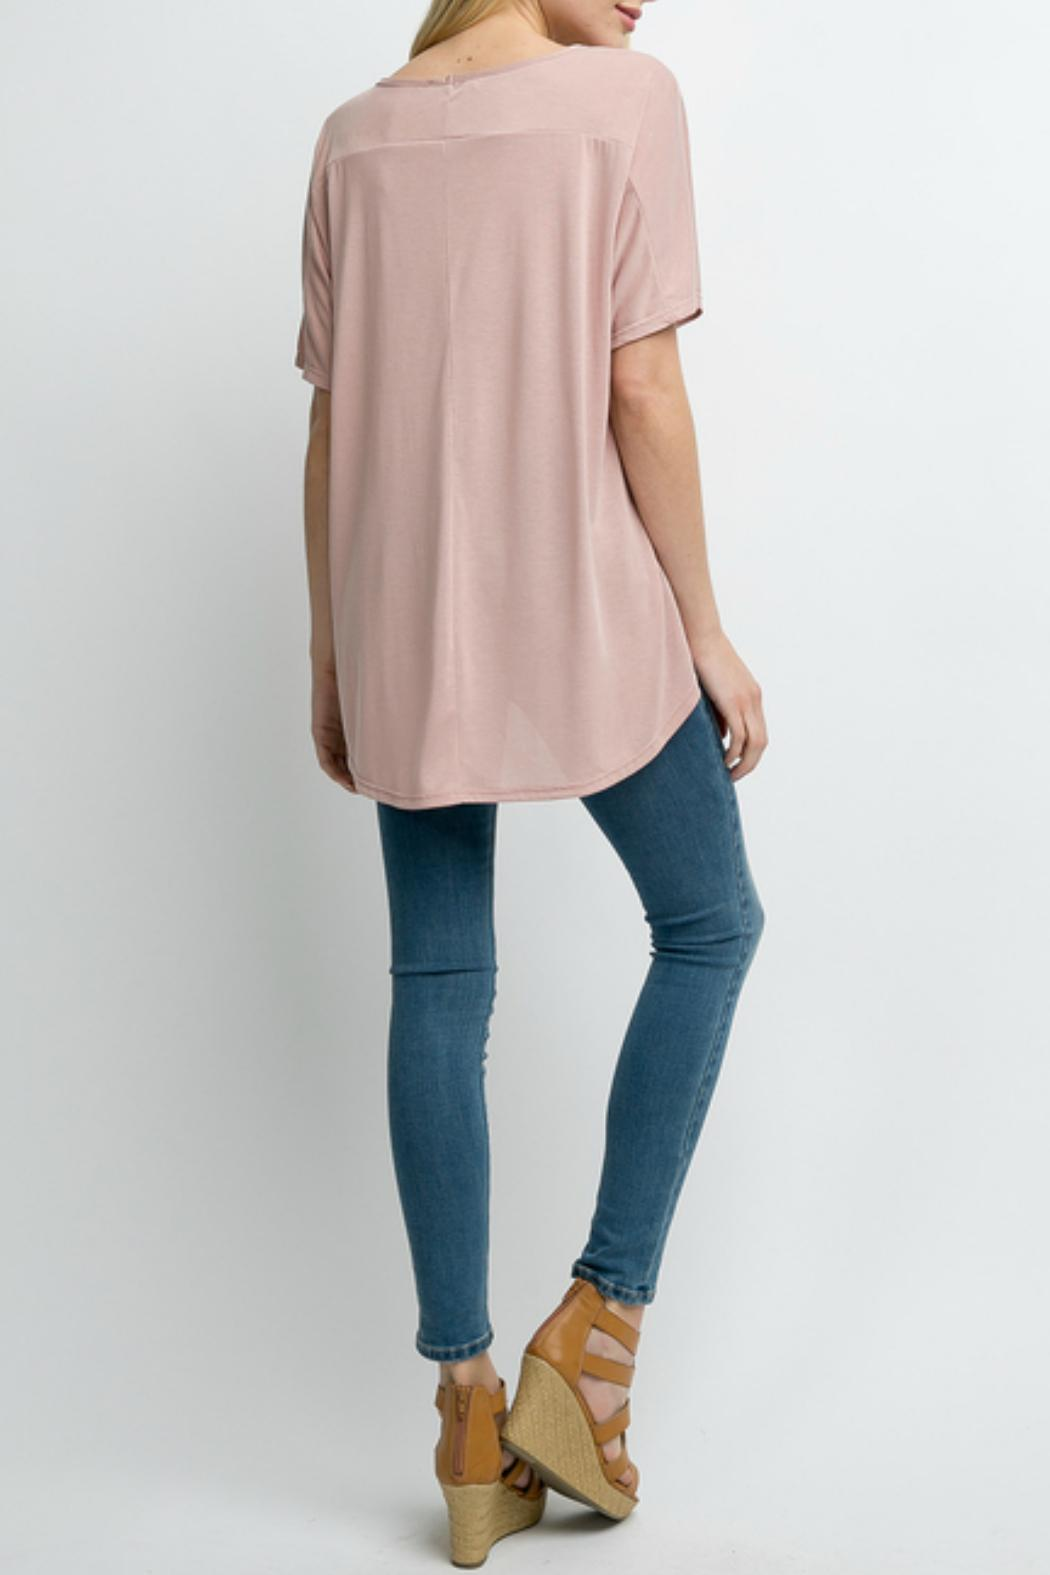 Andree by Unit Modal Tunic Top - Front Full Image